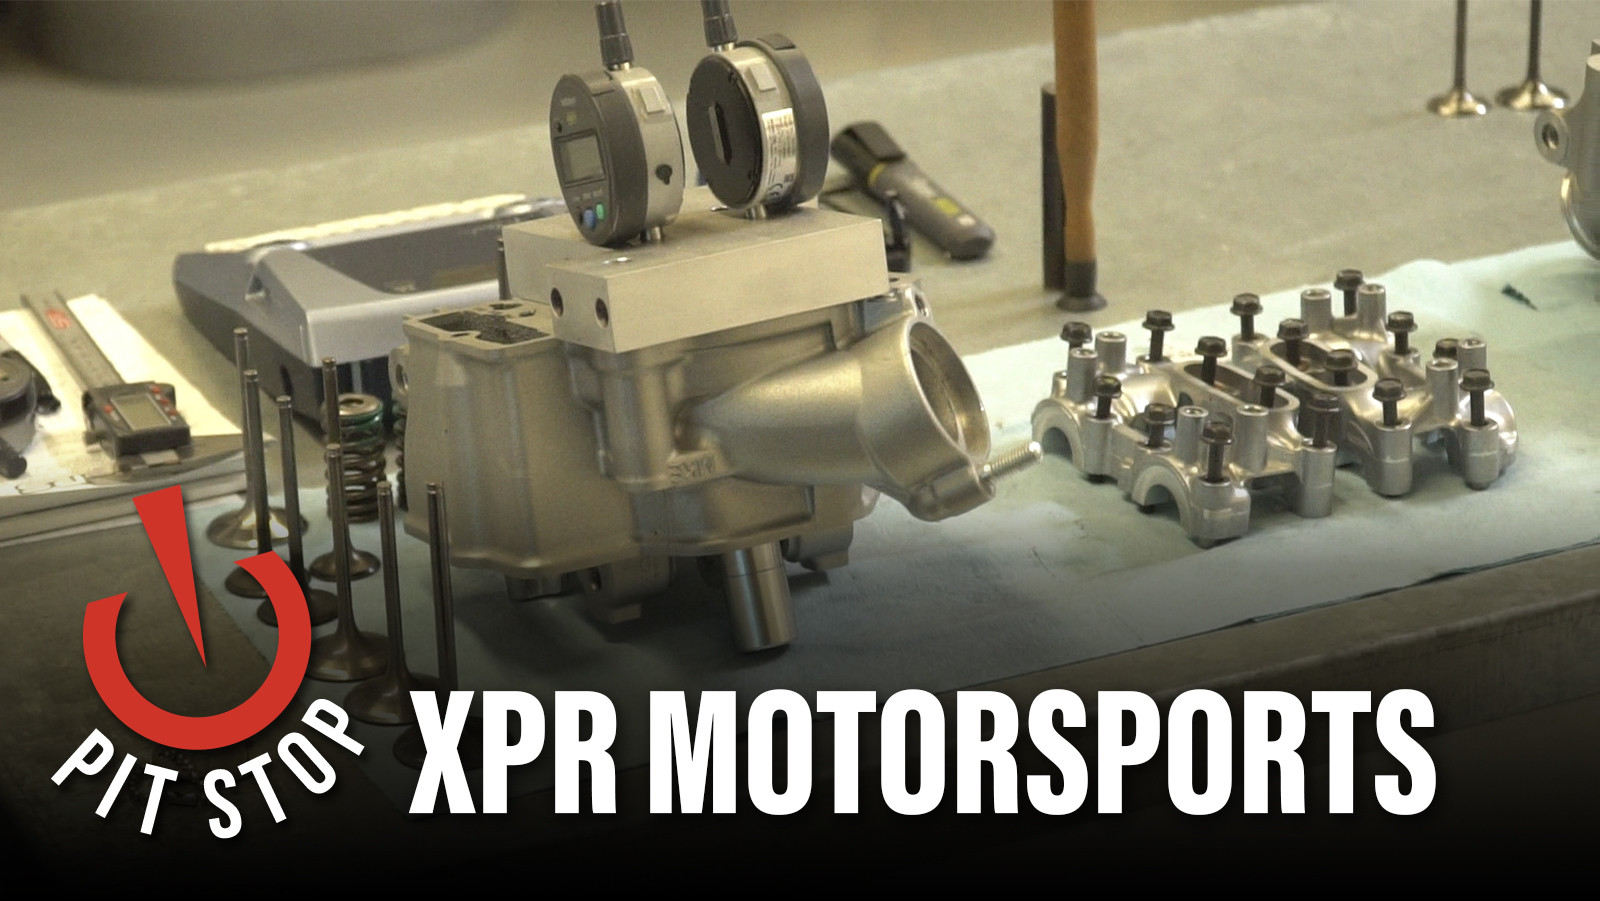 Pit Stop: XPR Motorsports